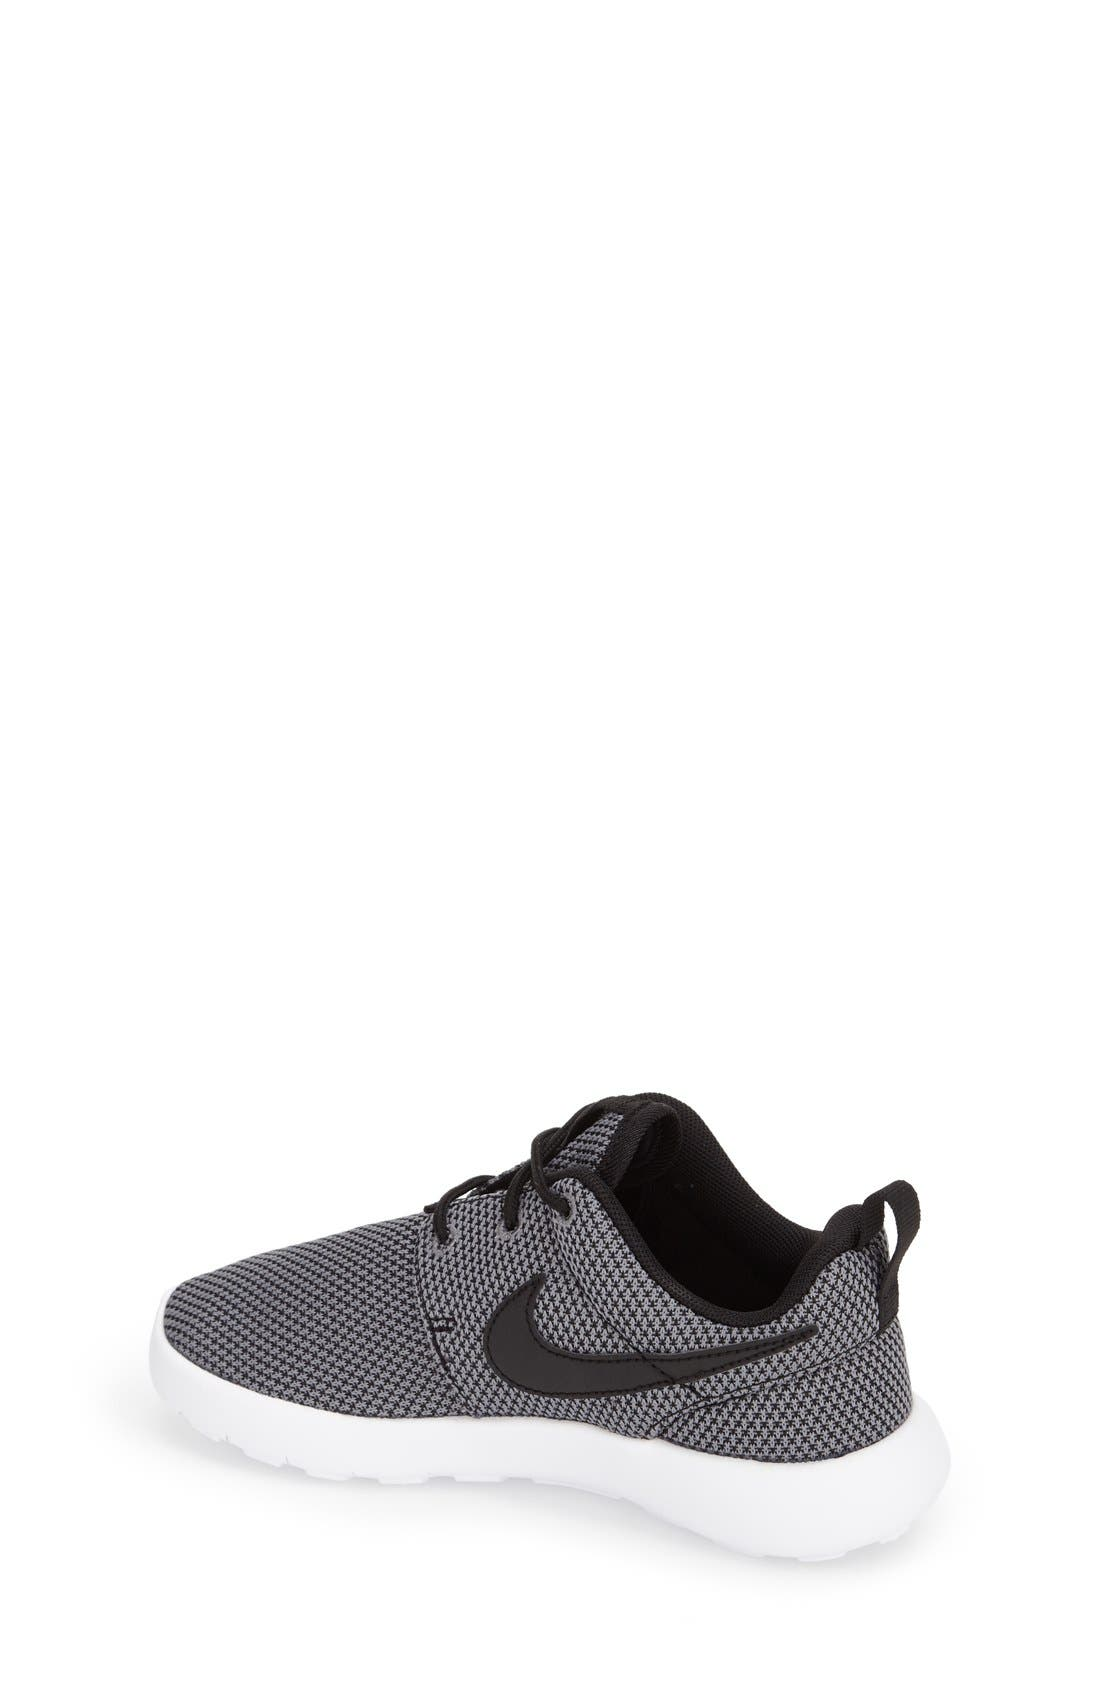 Roshe Run Sneaker,                             Alternate thumbnail 44, color,